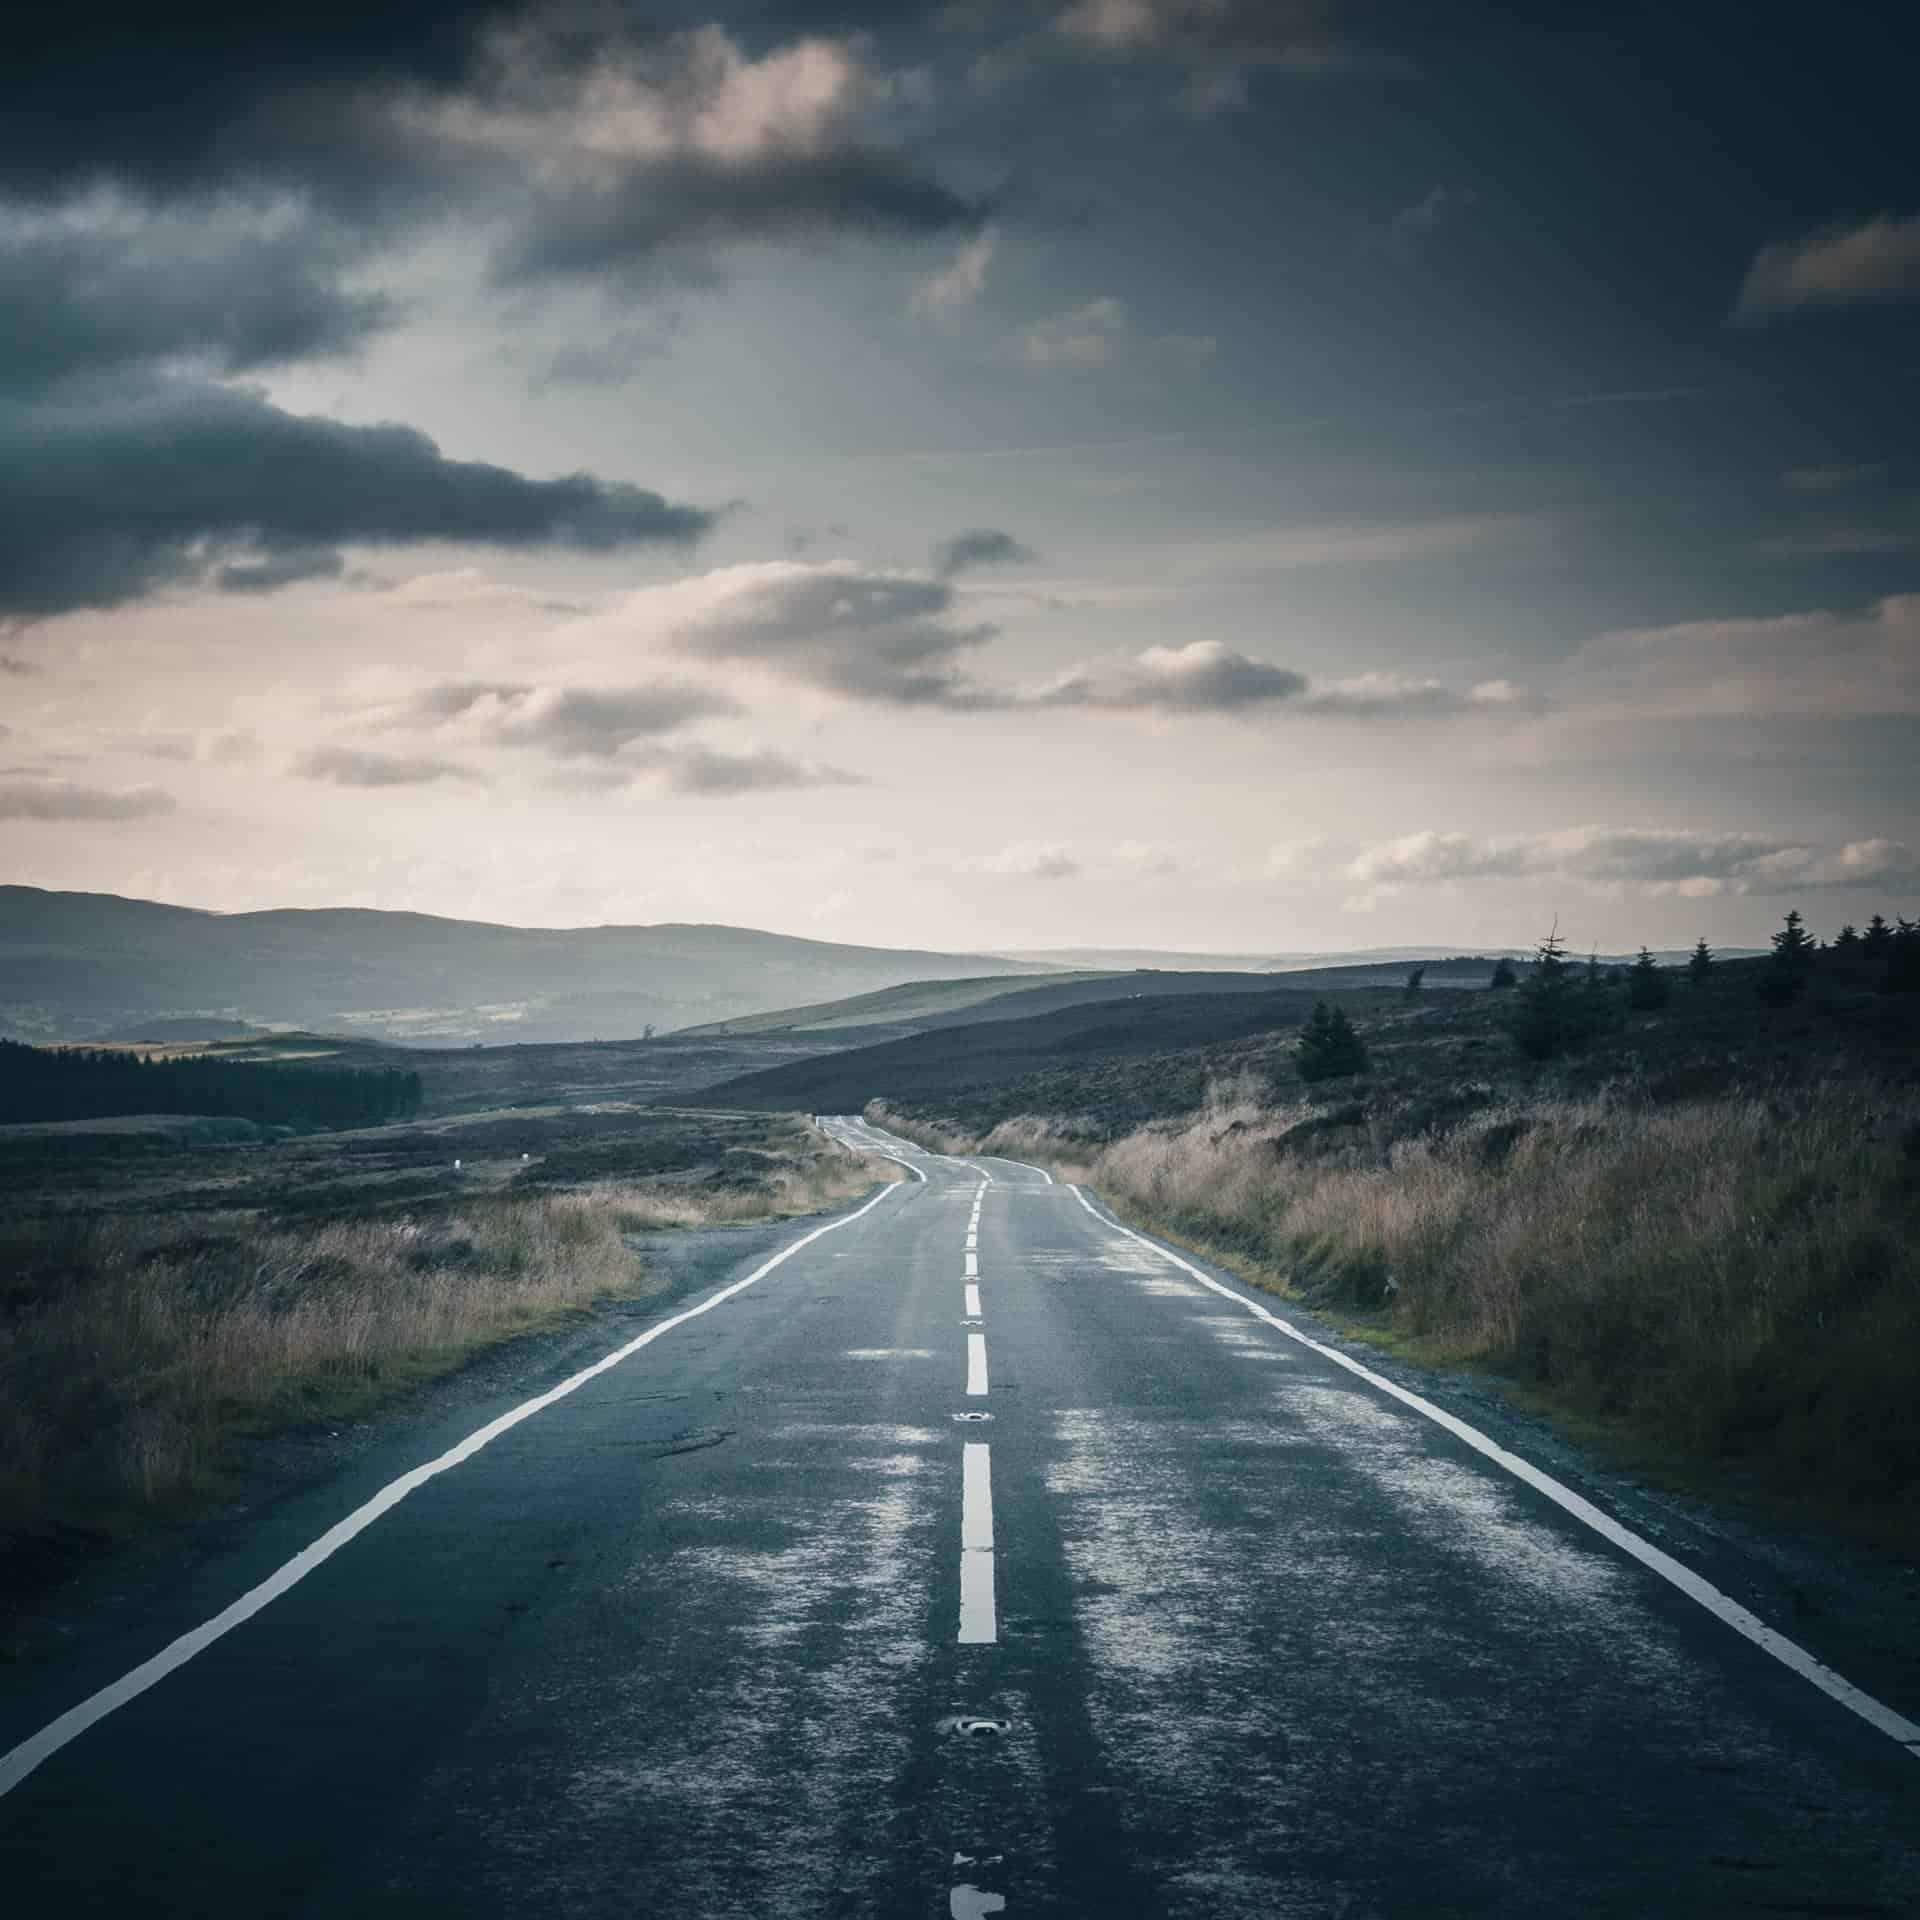 Landscape photograph, atmospheric road, headed towards Lake Bala in Wales, UK